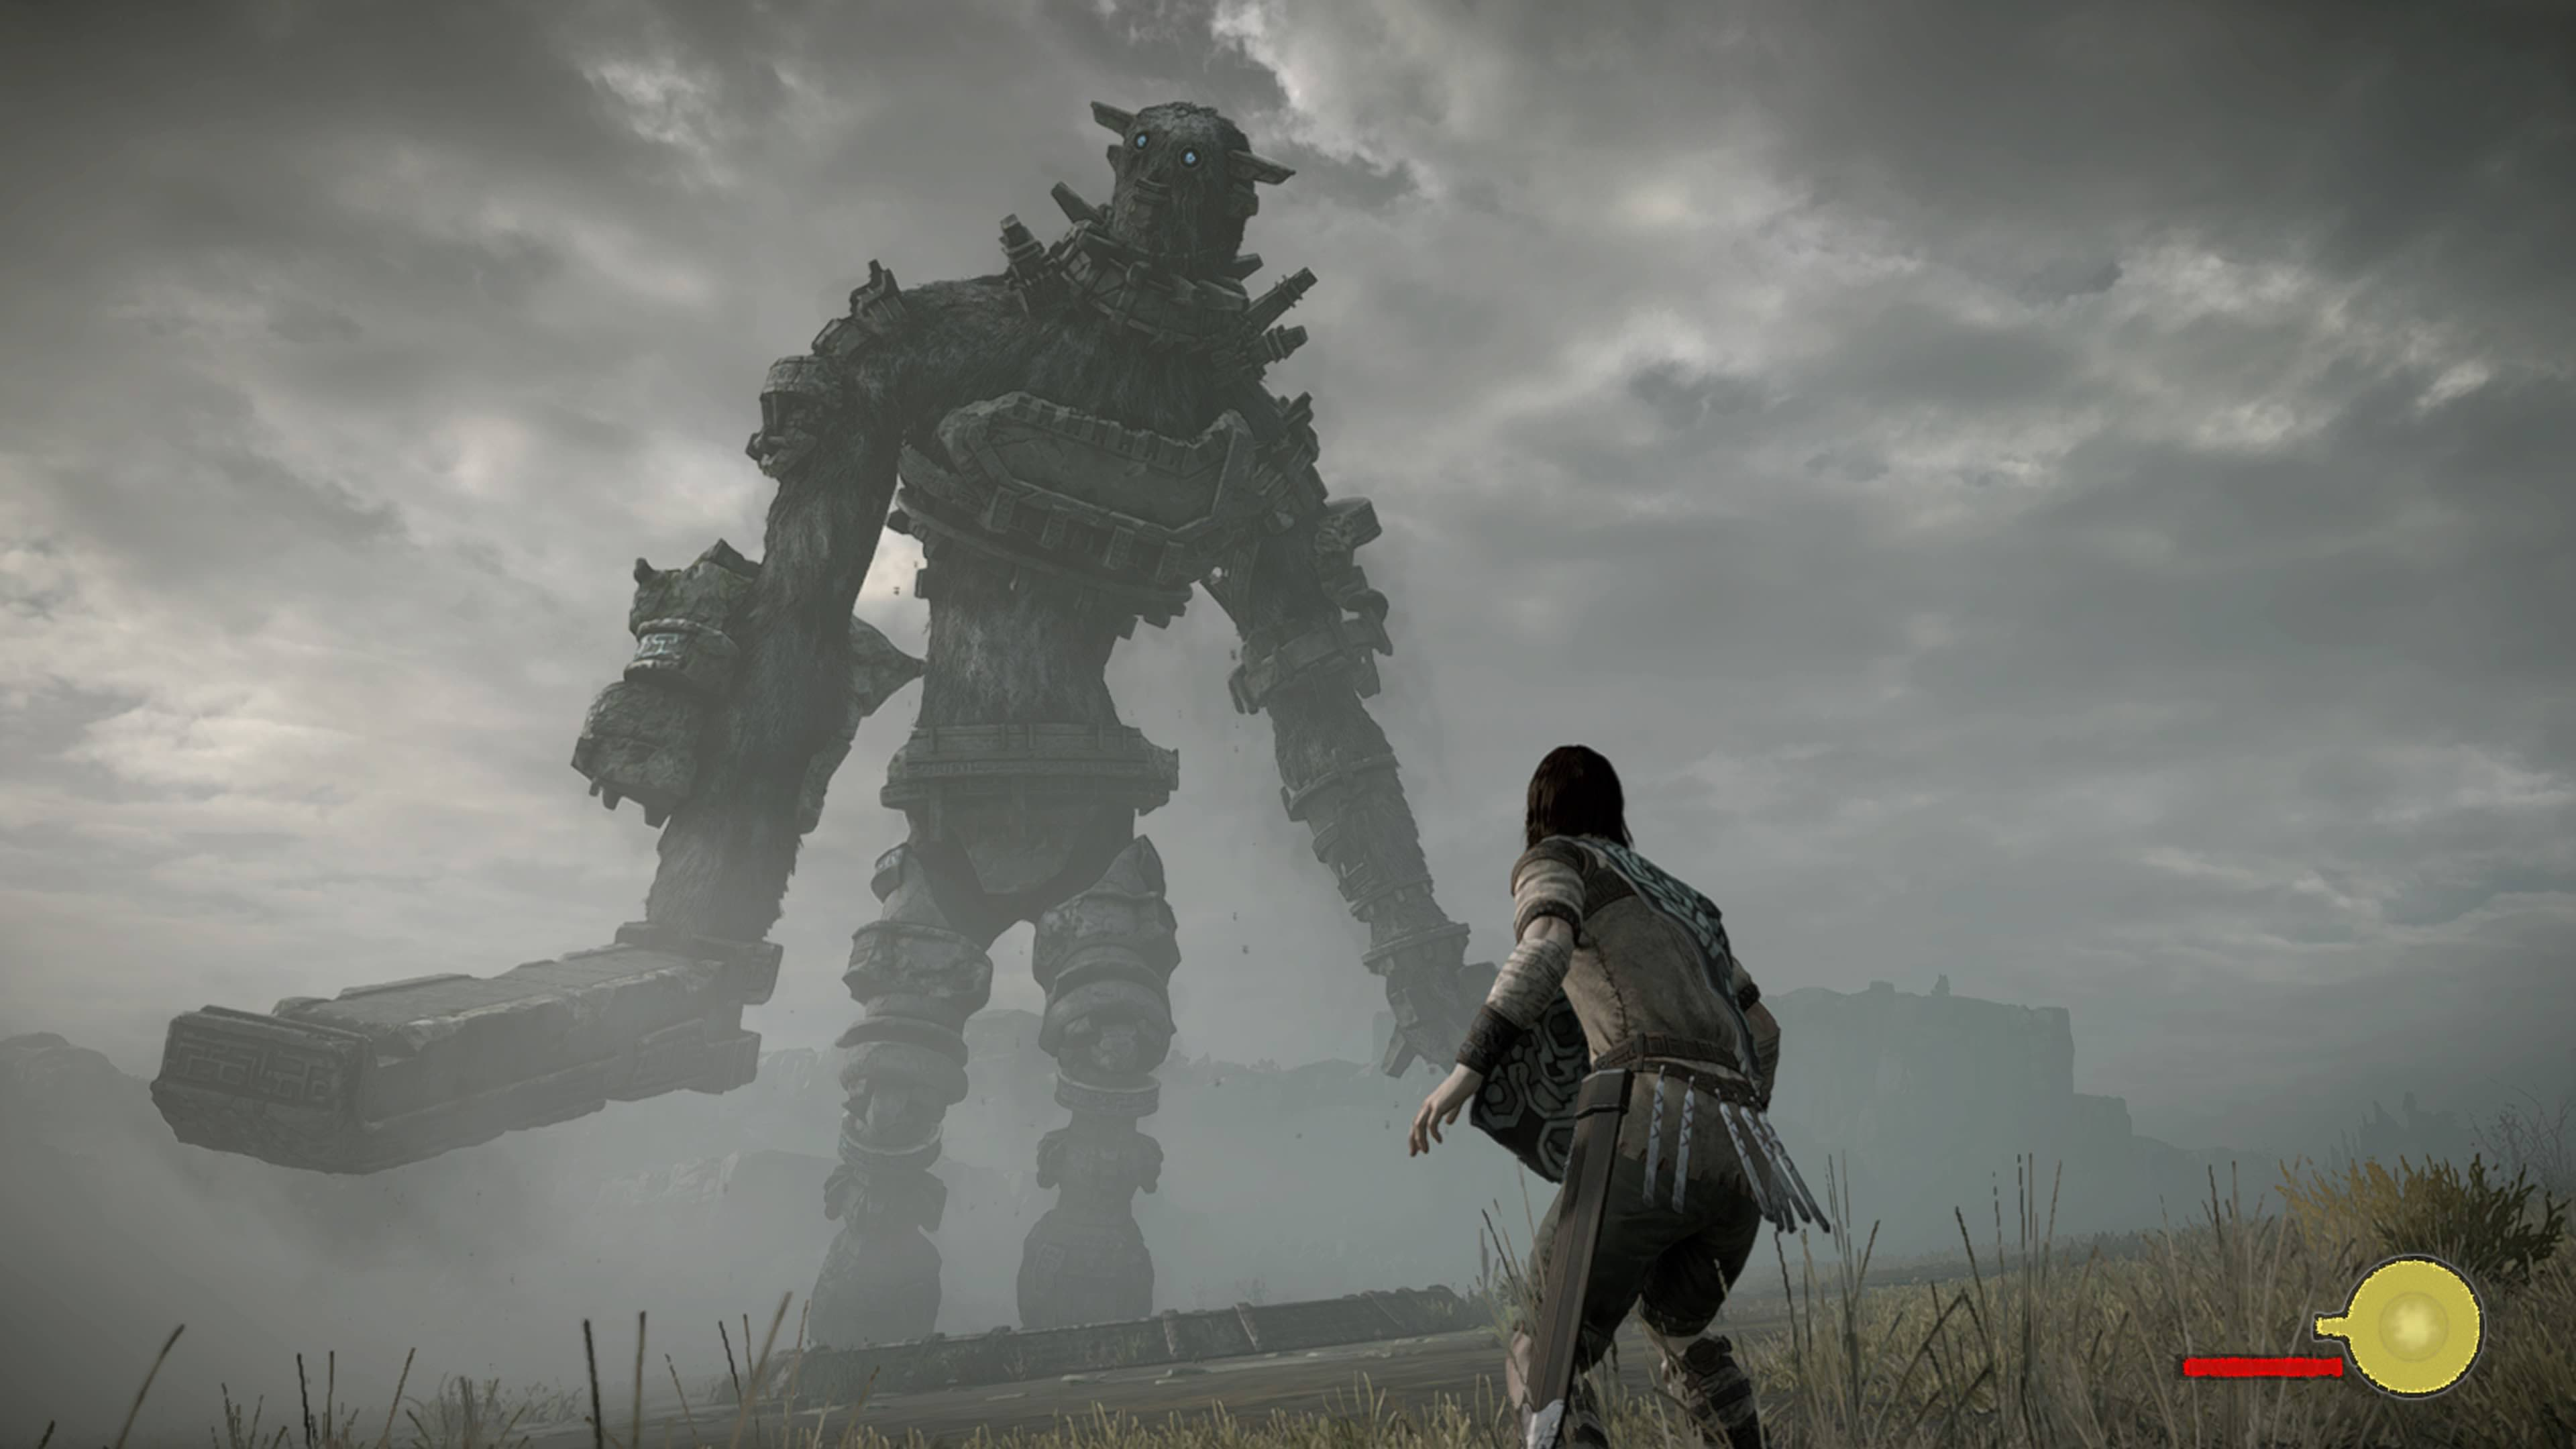 Shadow_of_the_Colossus_Avance_1